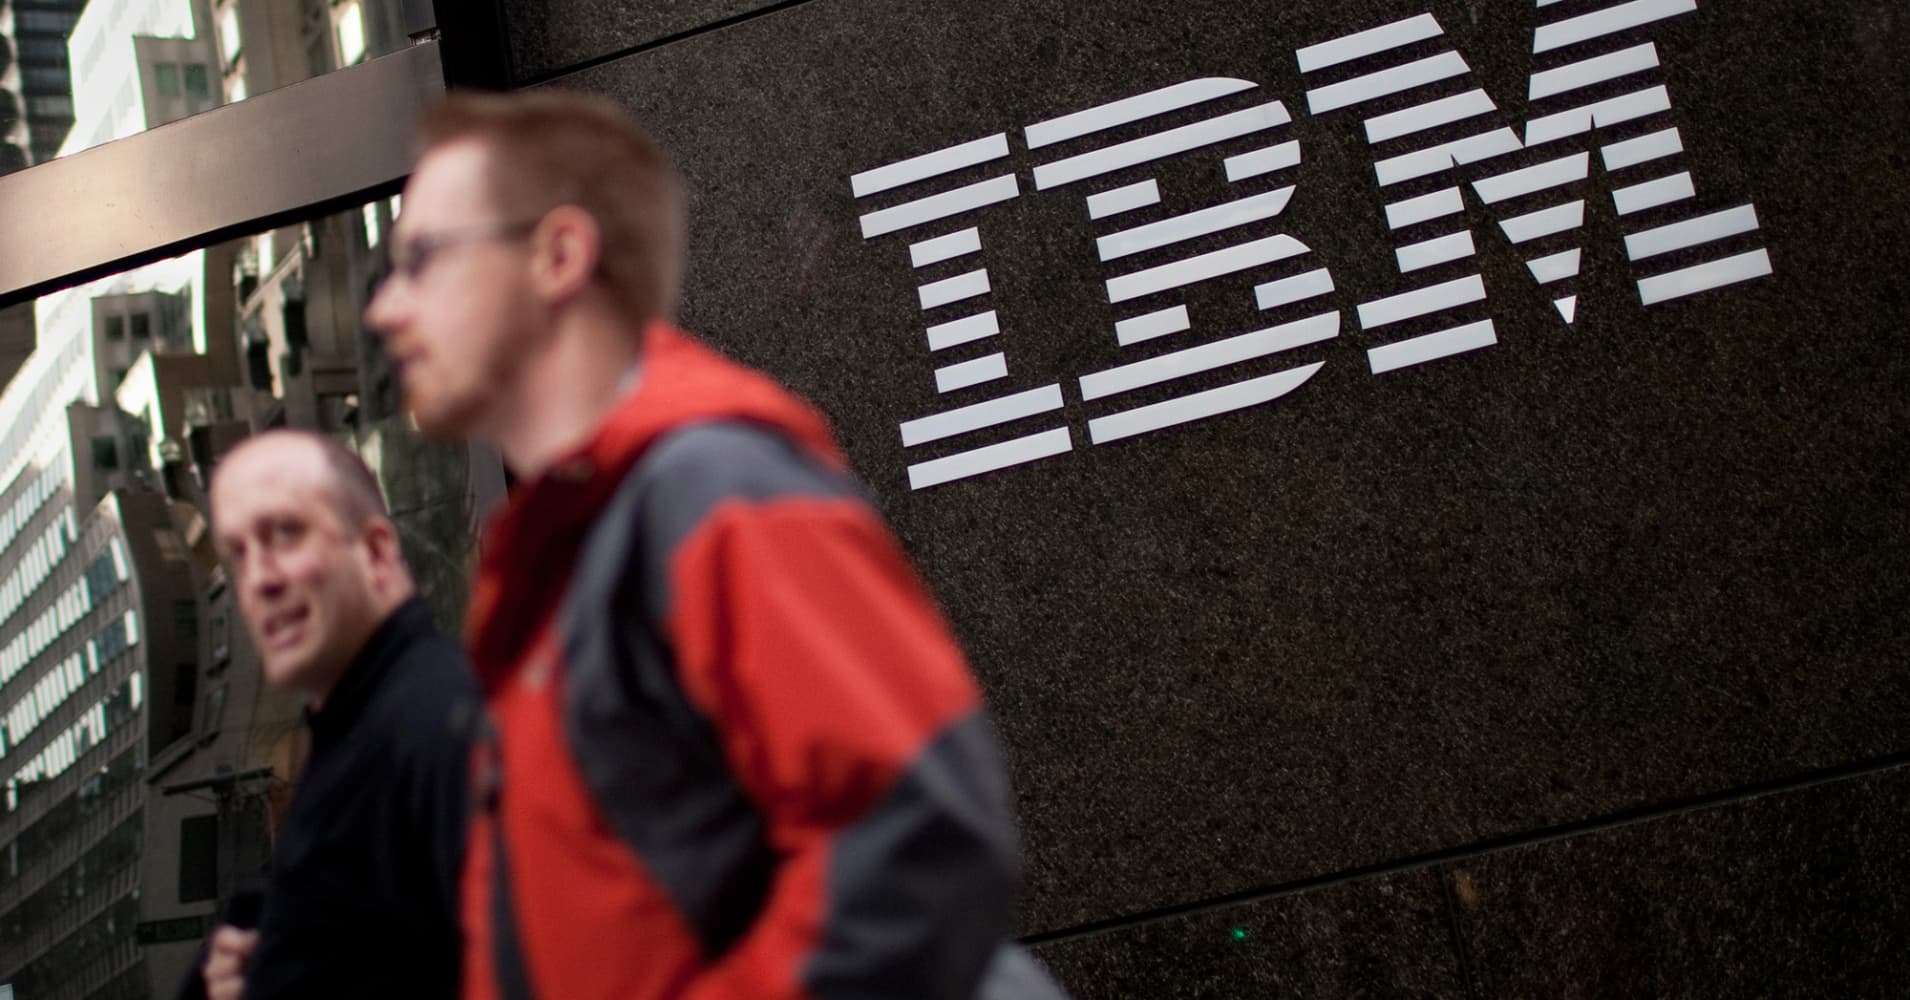 IBM, Twitter forge partnership on data analytics: DJ